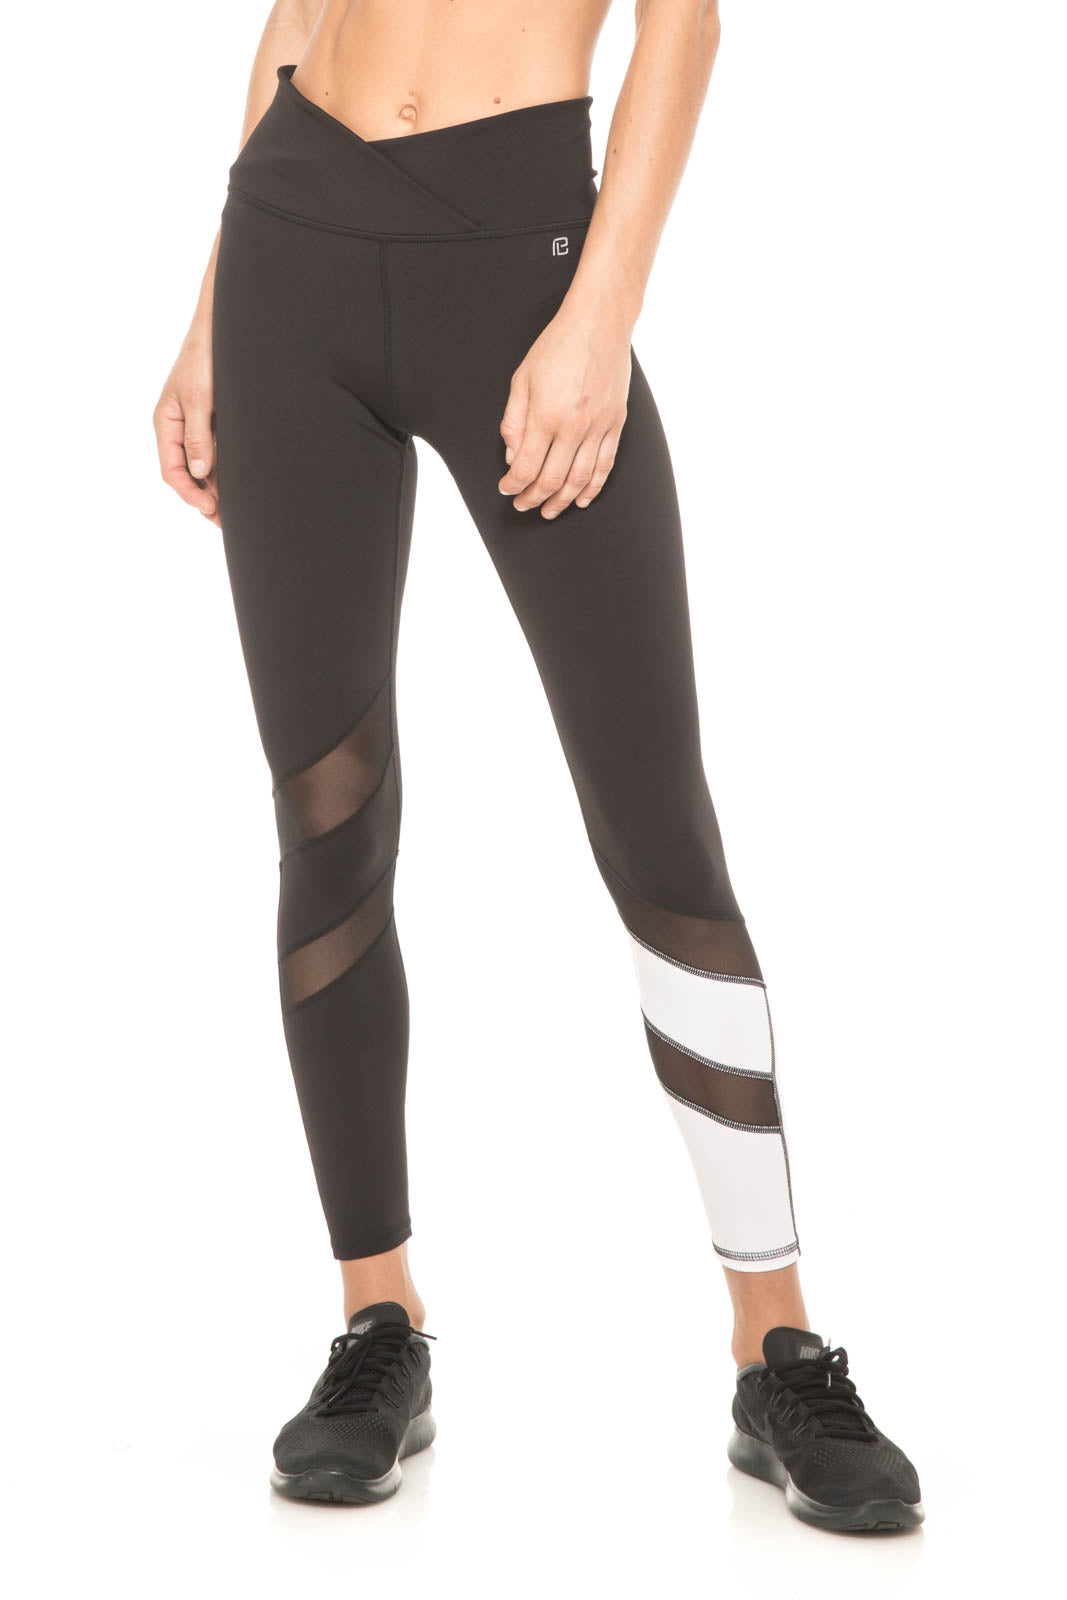 Body Language Sportswear:Women - Apparel - Active Wear - Bottom:Gianna Legging:XS